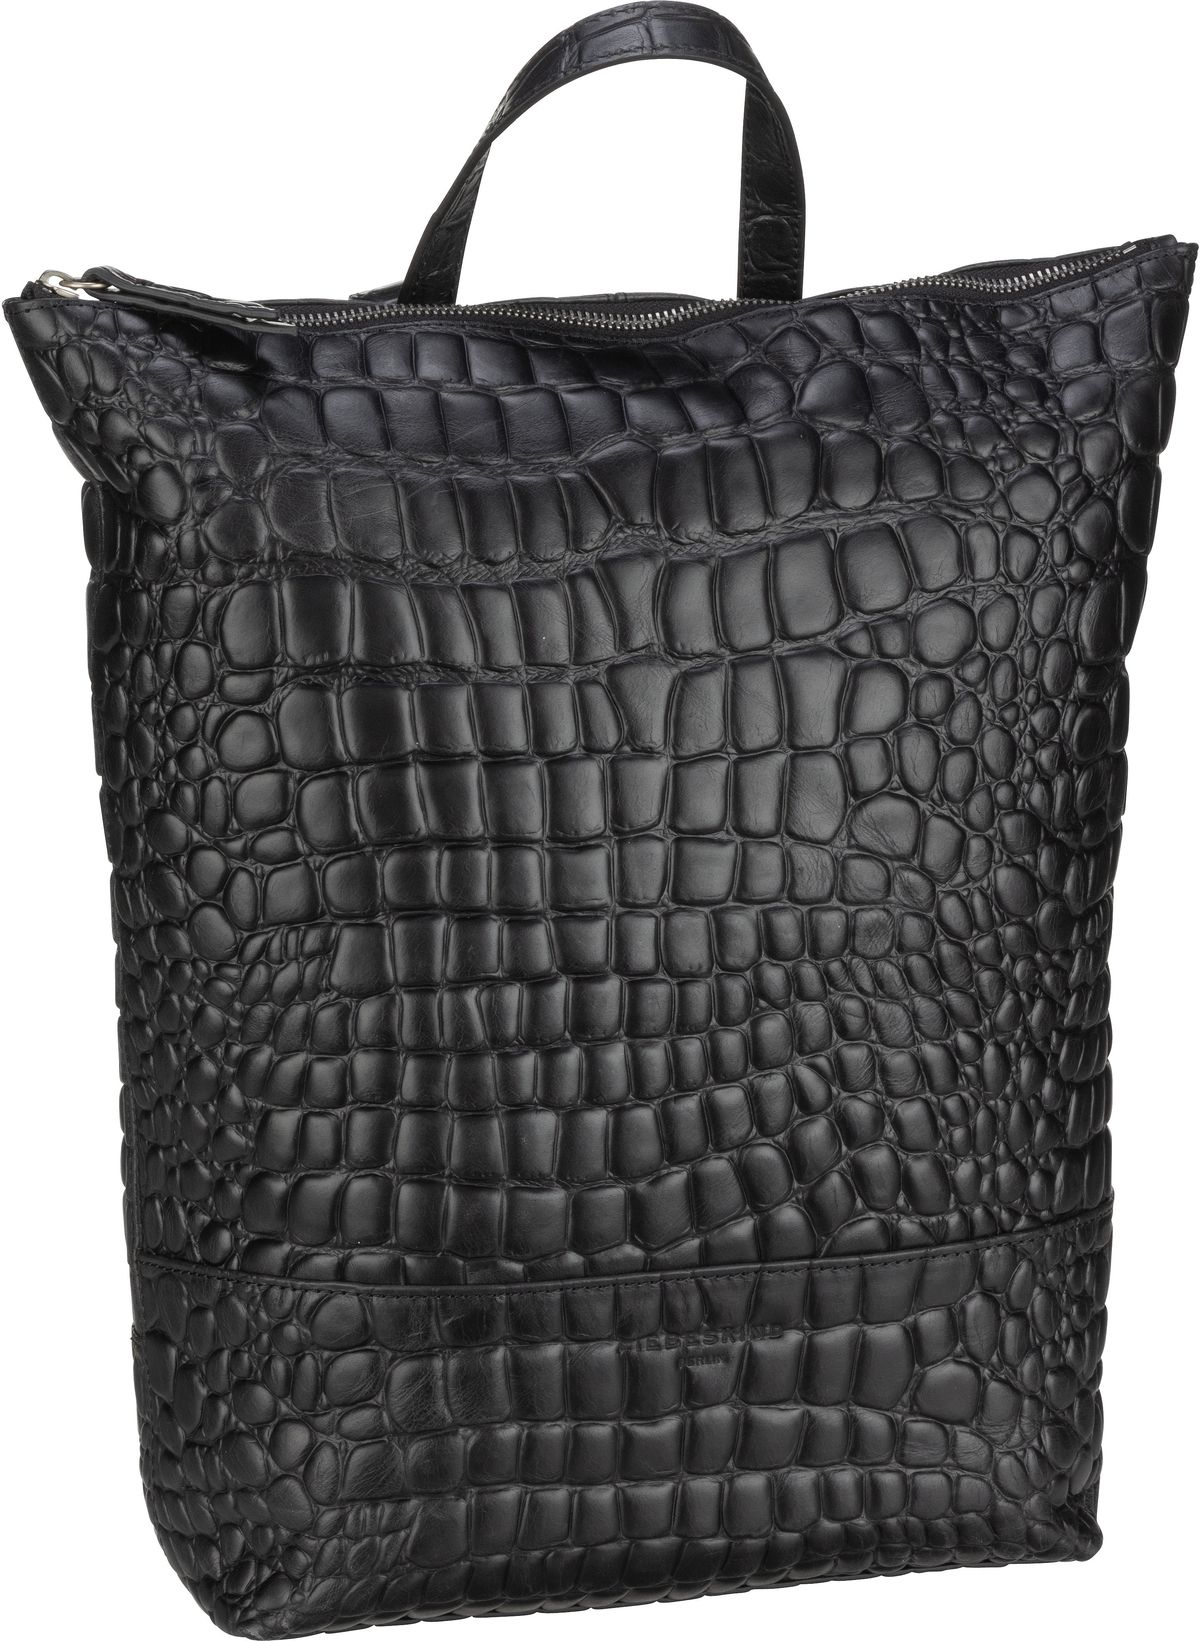 Berlin Rucksack / Daypack Malibu 2 Backpack L Croco Black